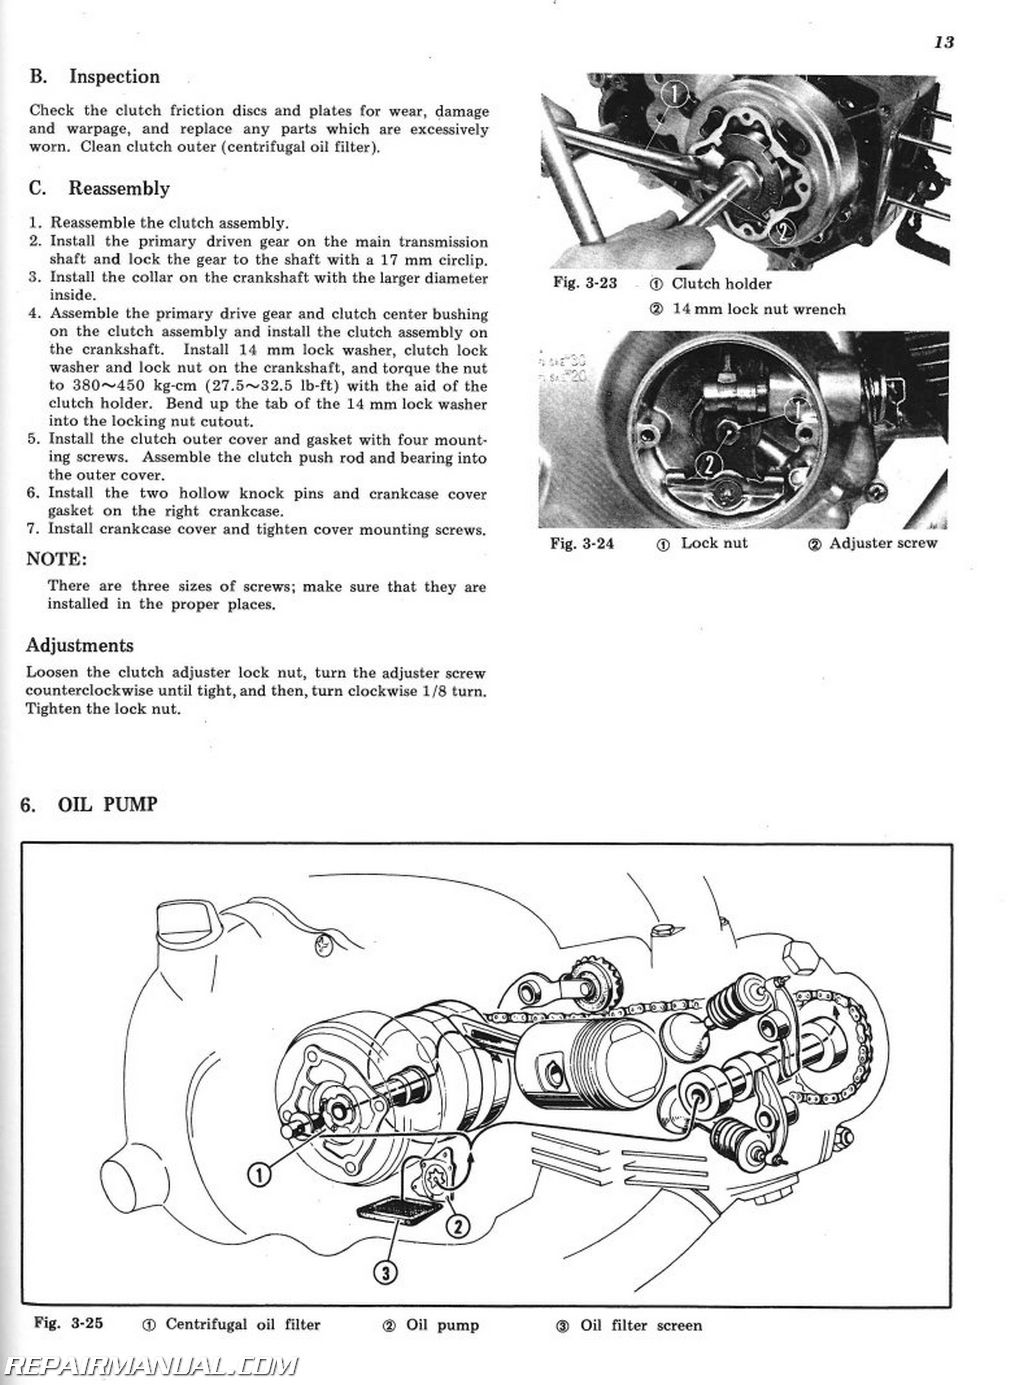 hight resolution of wiring diagrams source 1971 1976 honda sl70 xl70 motorcycle service manual rh